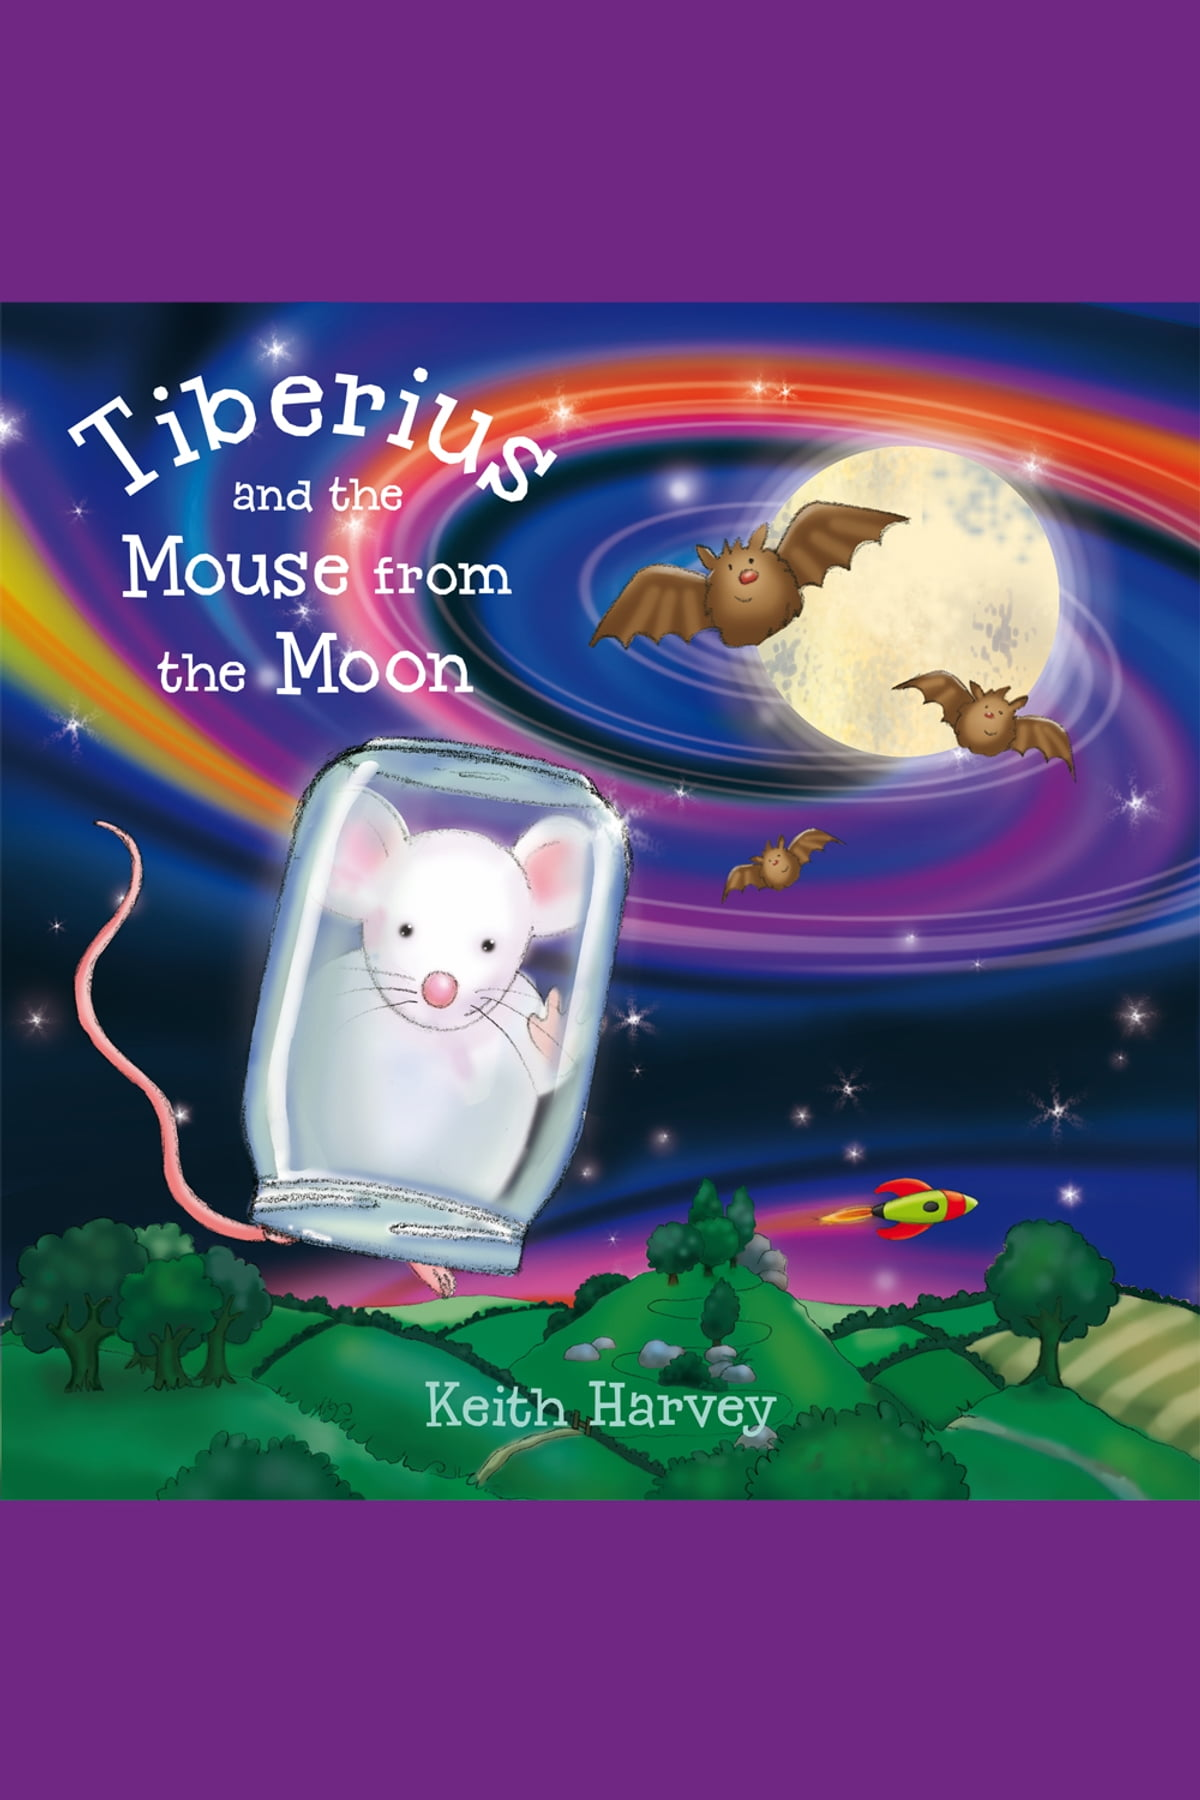 Tiberius And The Mouse From The Moon Ebook By Keith Harvey  9781902604343   Rakuten Kobo